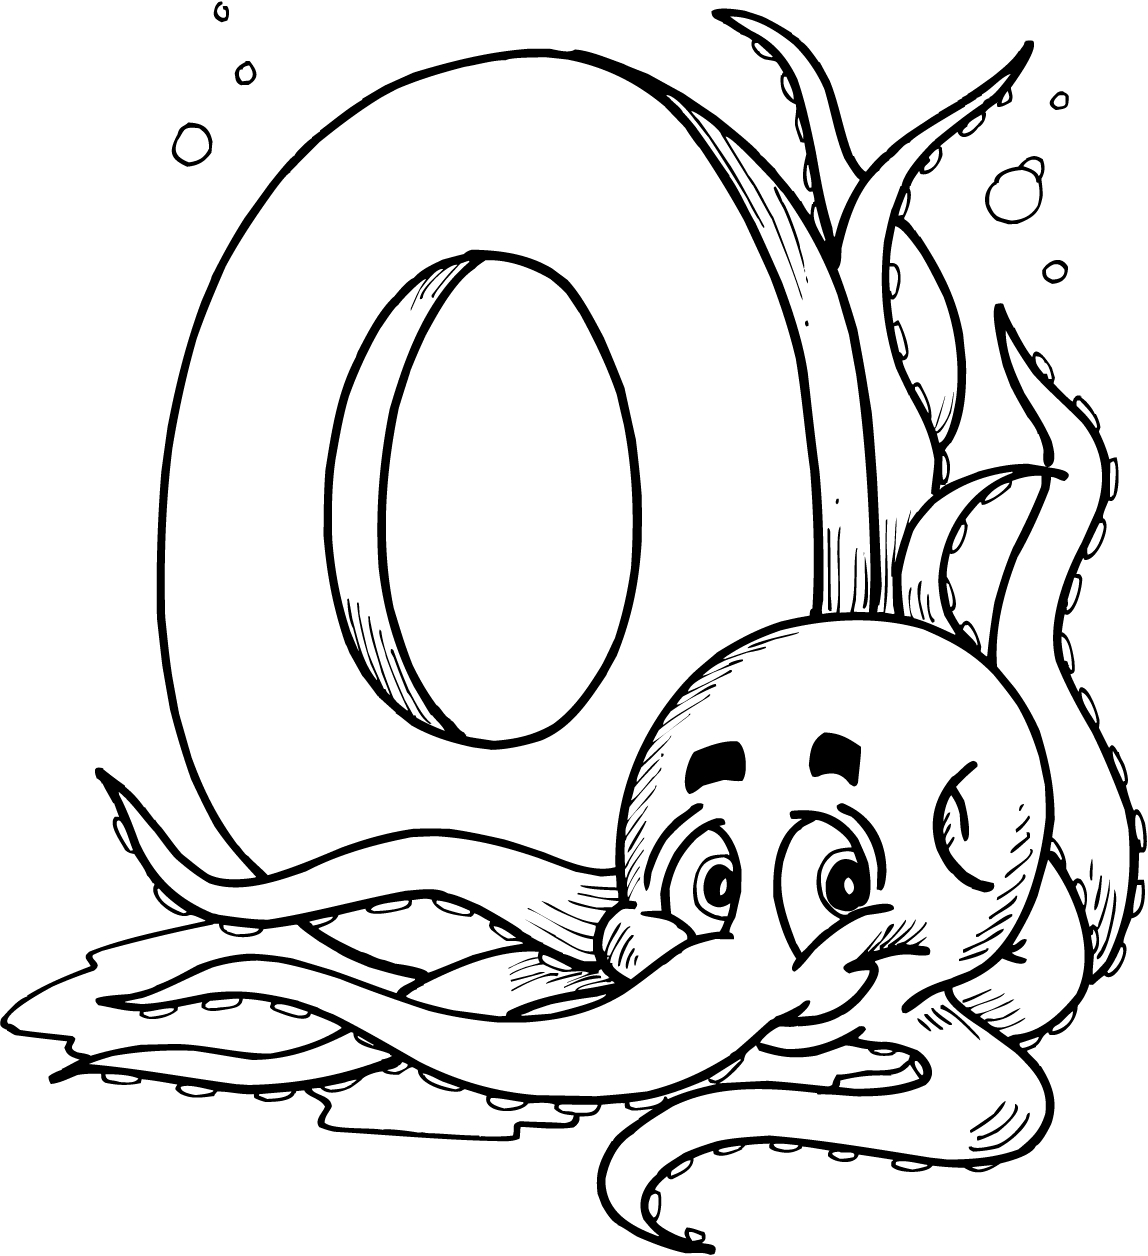 Printable coloring pages for toddlers - Coloring Pages For Toddlers Printables Incridible Letter O Coloring Pages Kindergarten With A